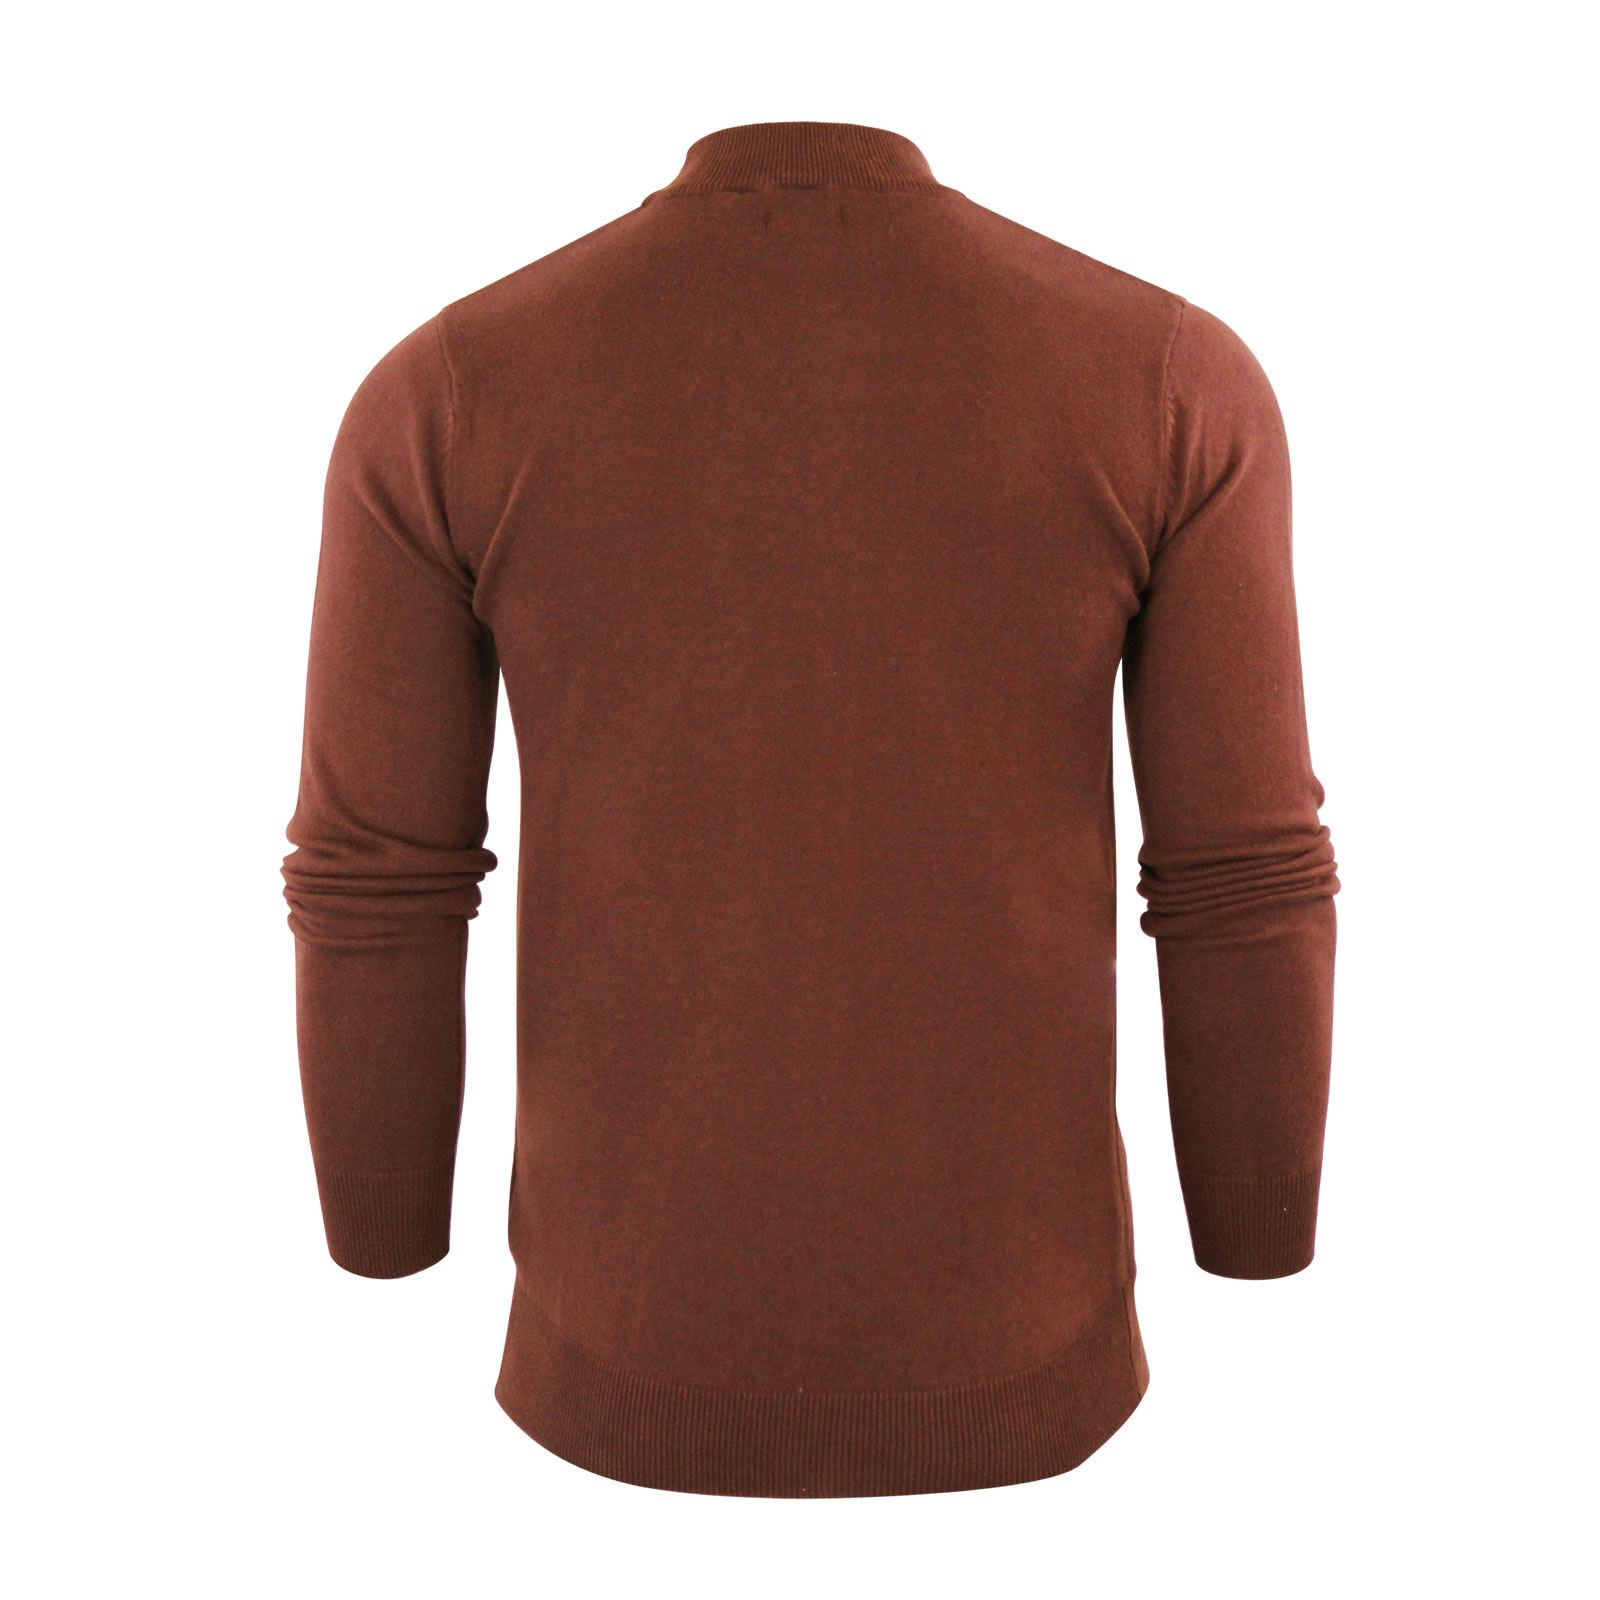 Mens-Jumper-Brave-Soul-Turtle-Neck-Cotton-Pull-Over-Sweater thumbnail 21